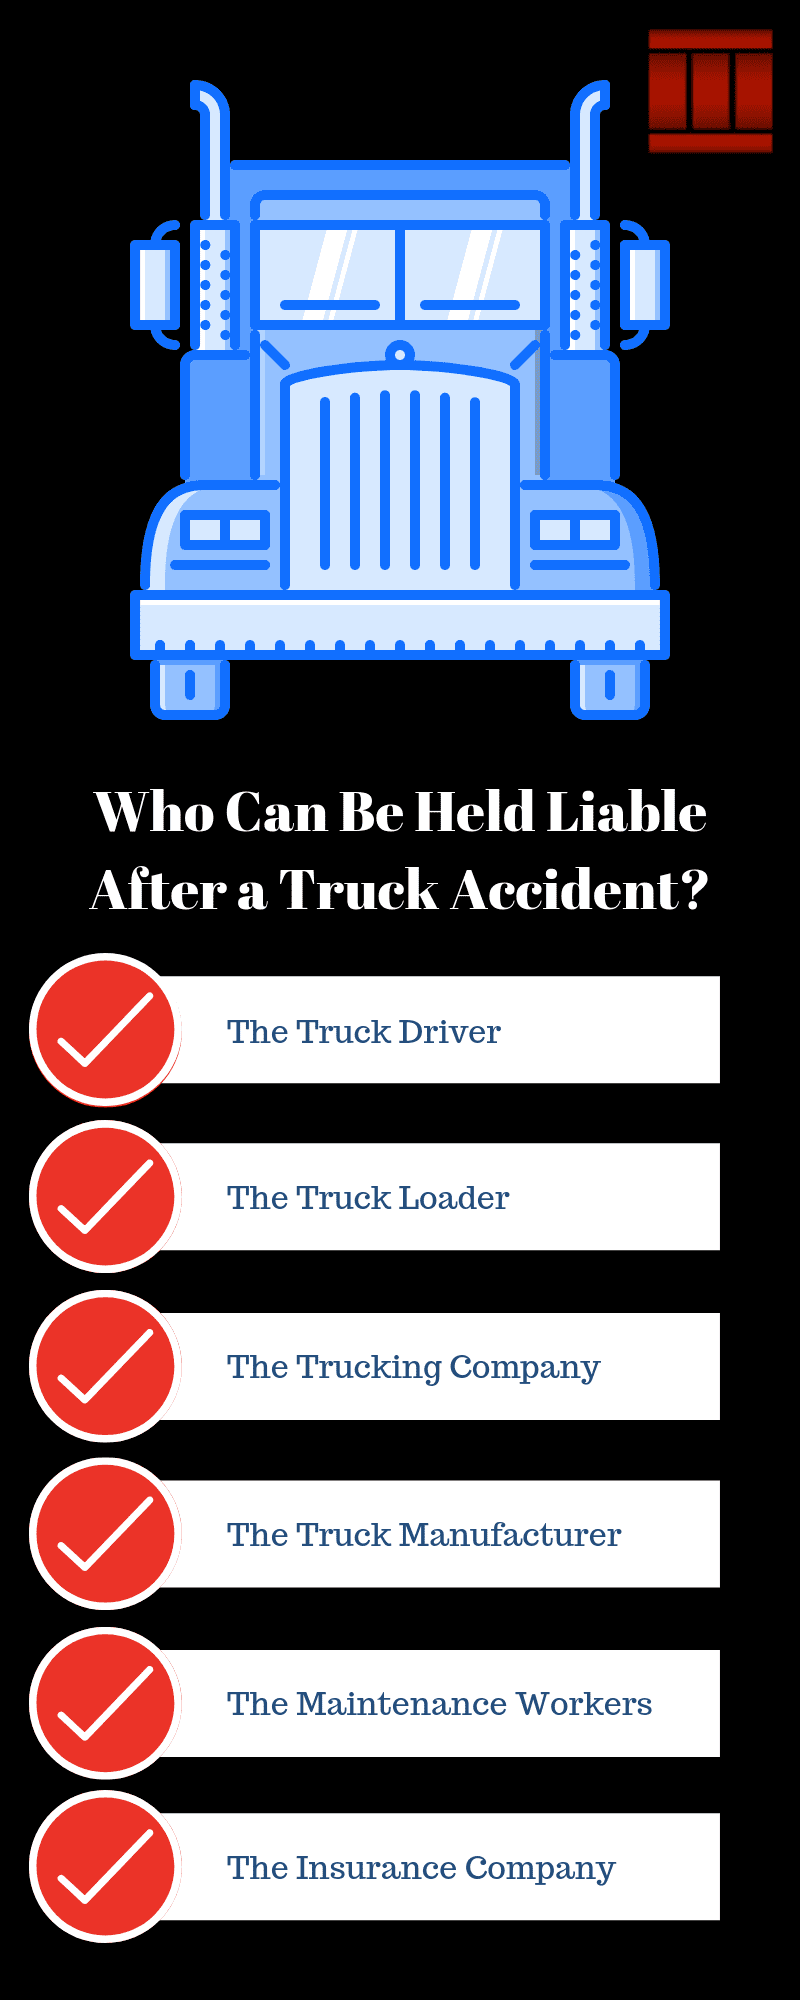 Infographic: Who Can Be Held Liable After a Truck Accident? The truck driver, the truck loader, the trucking company, the truck manufacturer, the maintenance workers, the insurance company